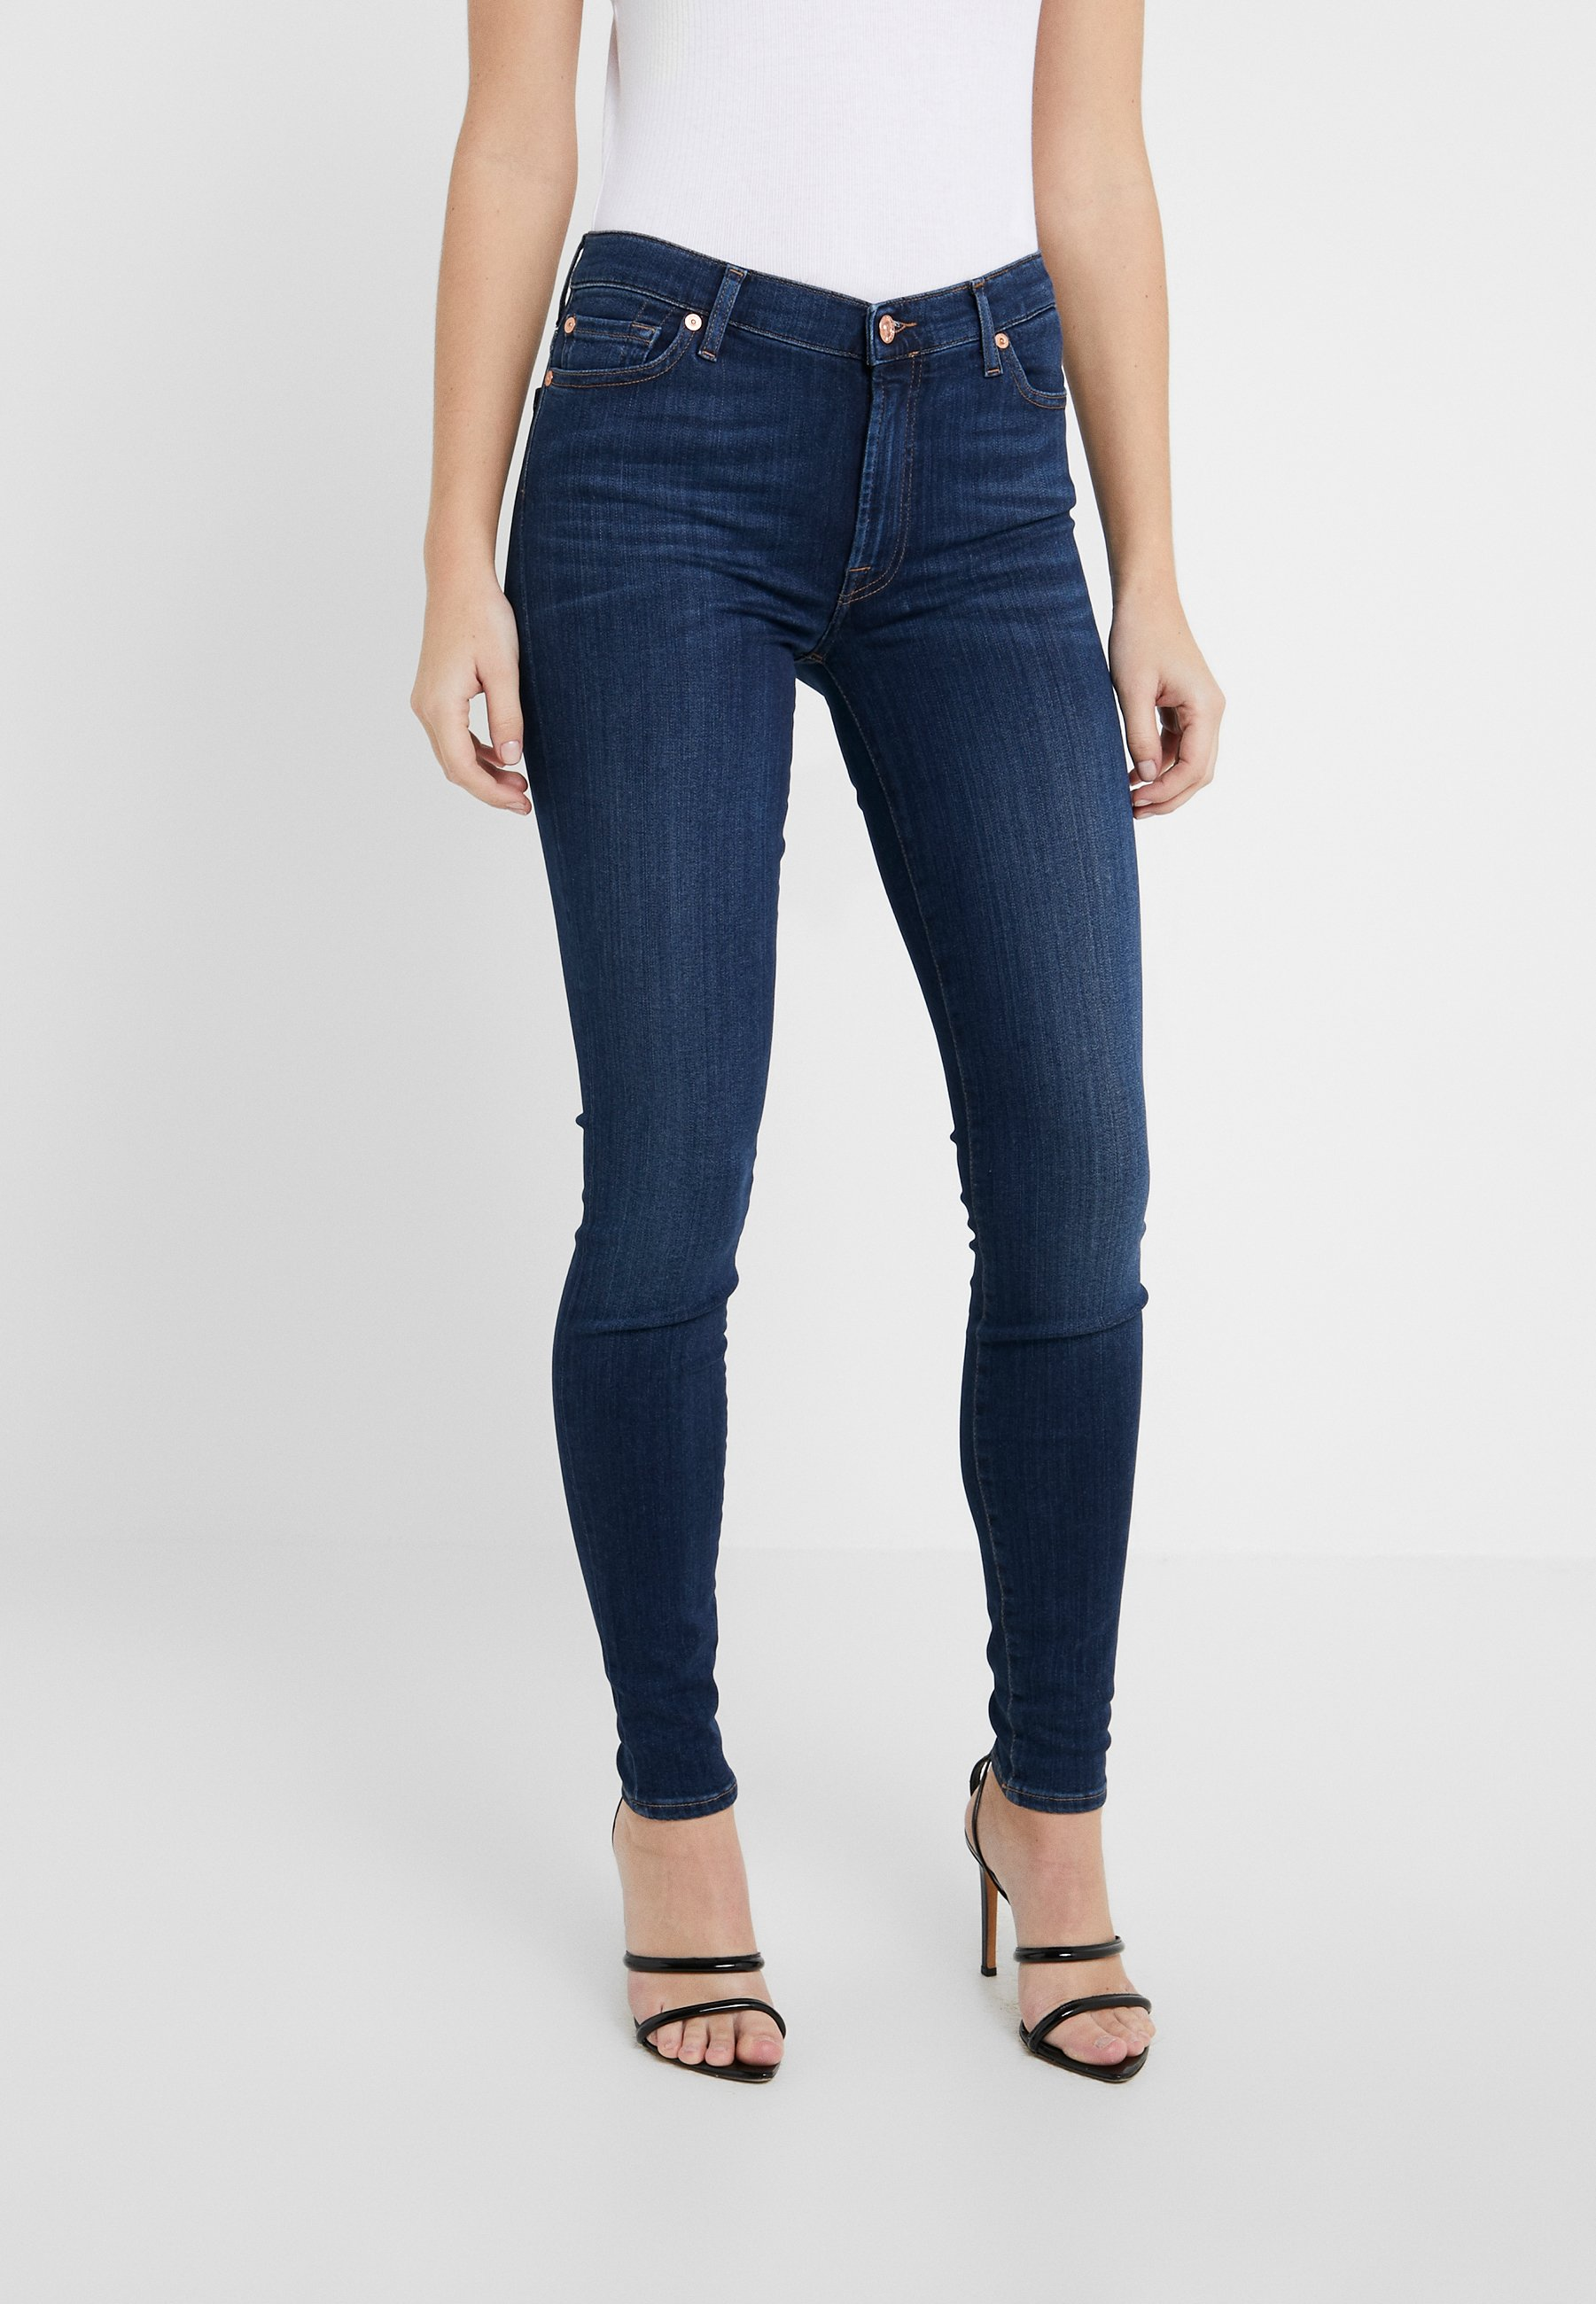 Clearance Women's Clothing 7 for all mankind ILLUSION LUXE LOVESTORY Jeans Skinny Fit mid blue OjrWQMdLU